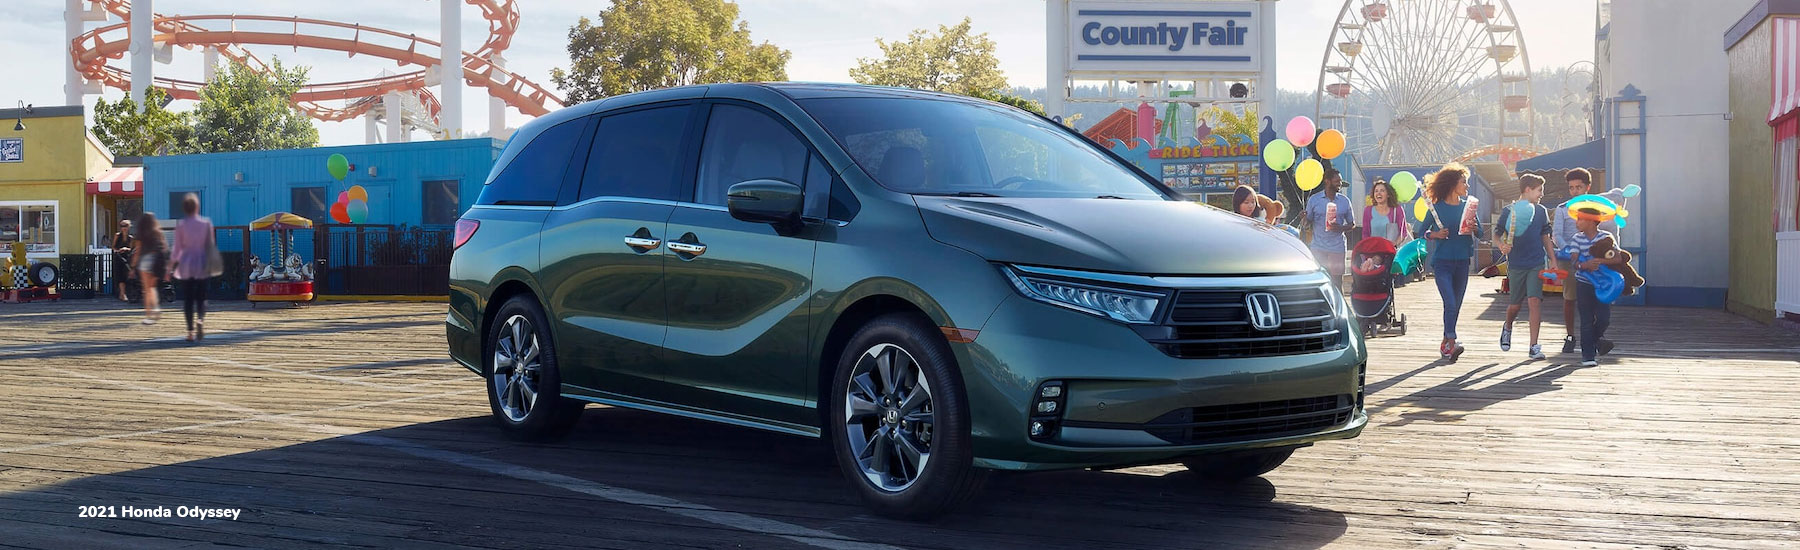 2021 Honda Odyssey For Sale In Bellevue, Washington